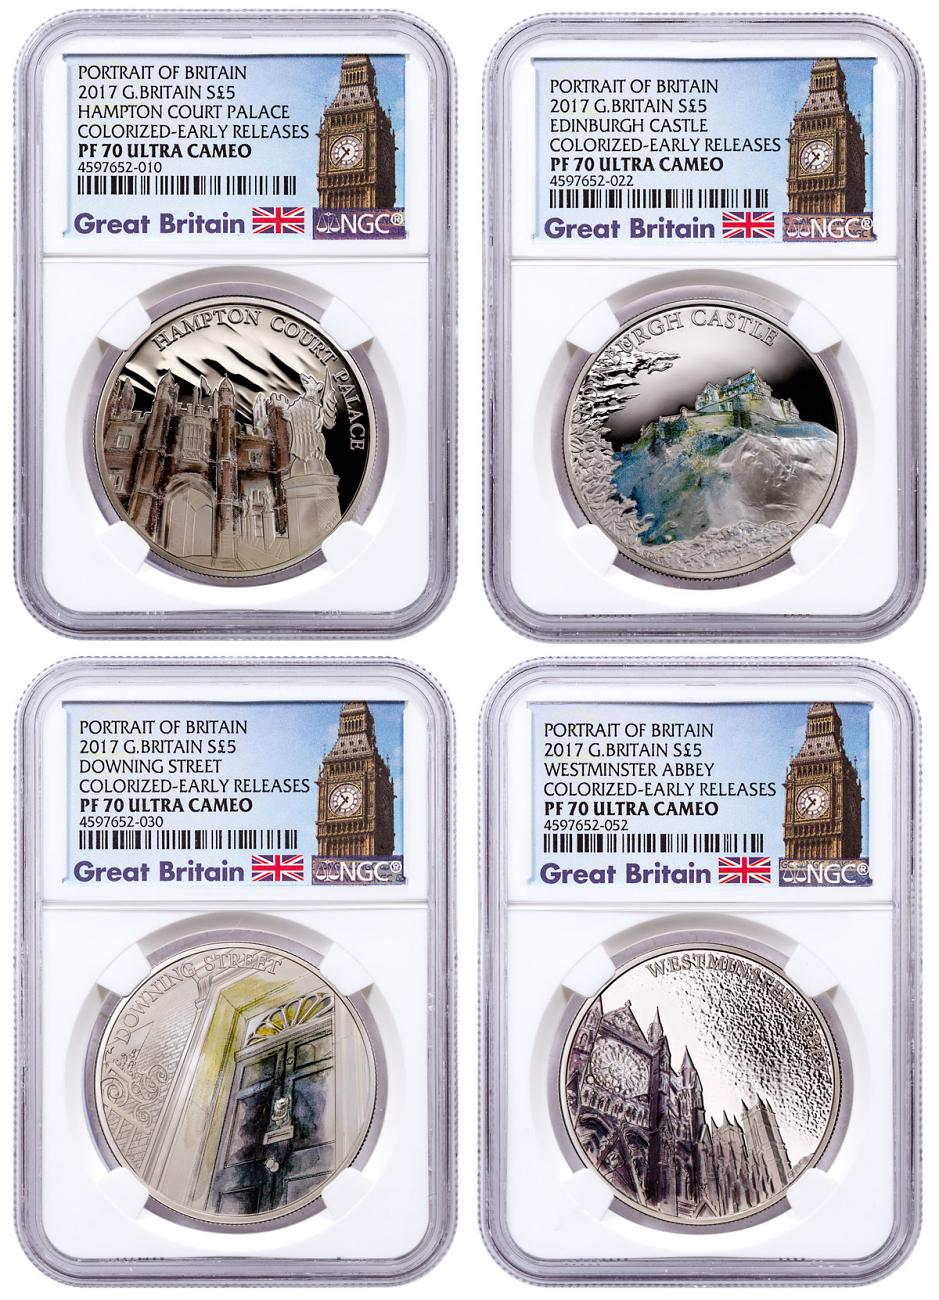 2017 Great Britain Portrait of Britain Silver Colorized Proof £5 4-Coin Set NGC PF70 UC ER Exclusive Big Ben Label